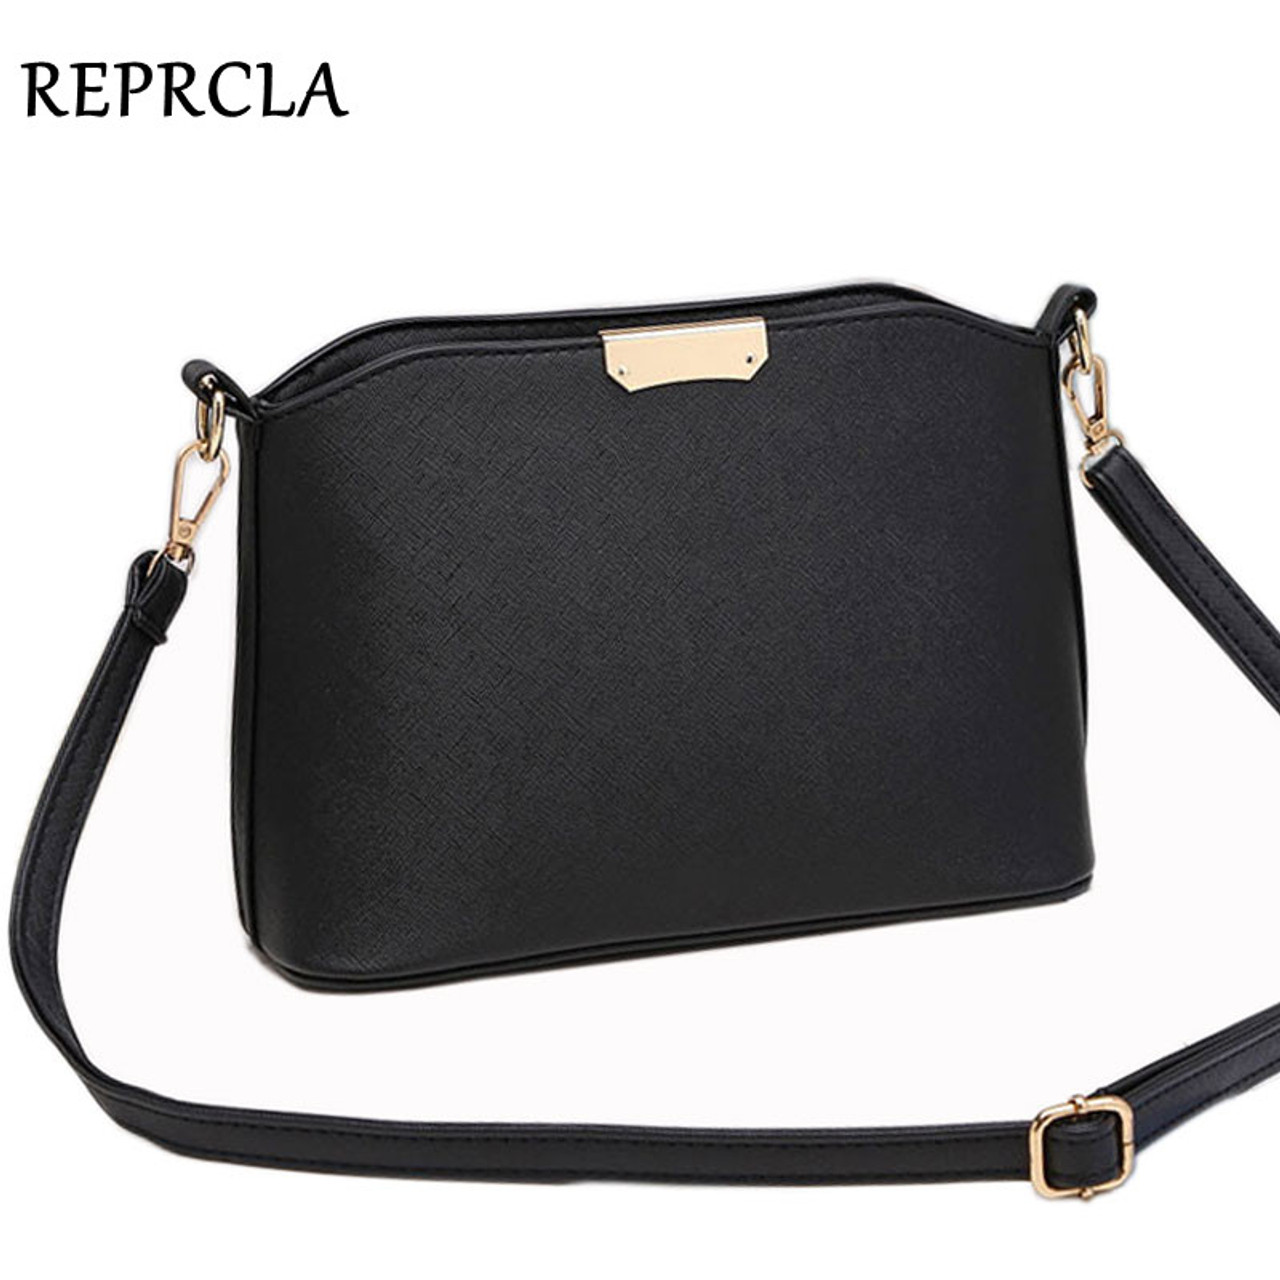 1cc962841733 ... REPRCLA New Candy Color Women Messenger Bags Casual Shell Shoulder  Crossbody Bags Fashion Handbags Clutches Ladies ...